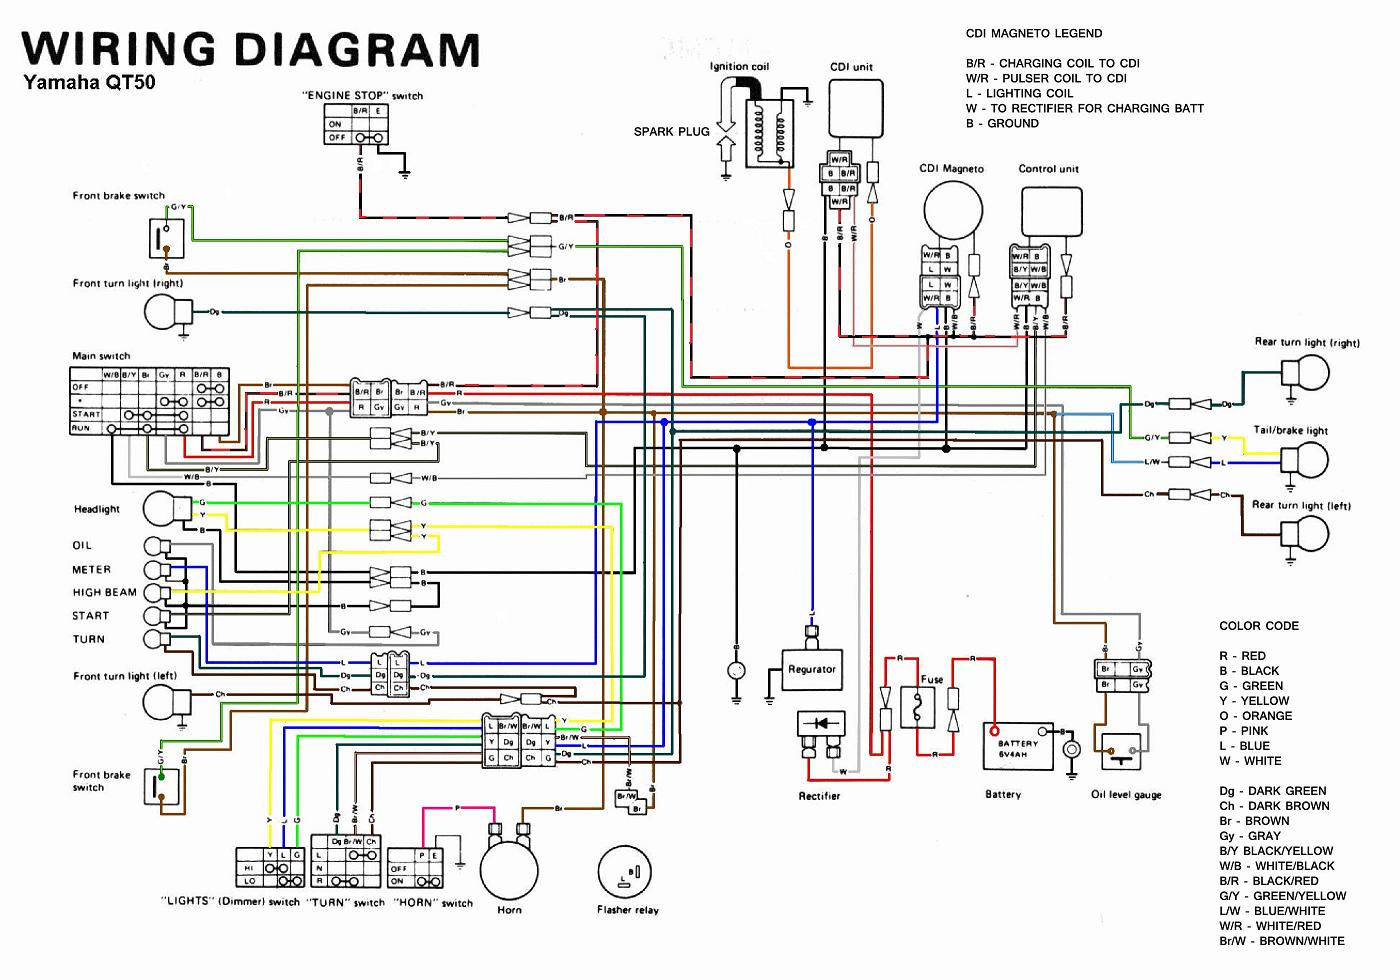 Polaris Trailblazer 250 Wiring Diagram Great Installation Of 2002 Honda Shadow 1100 Diagrams For Free 1992 Trail Boss